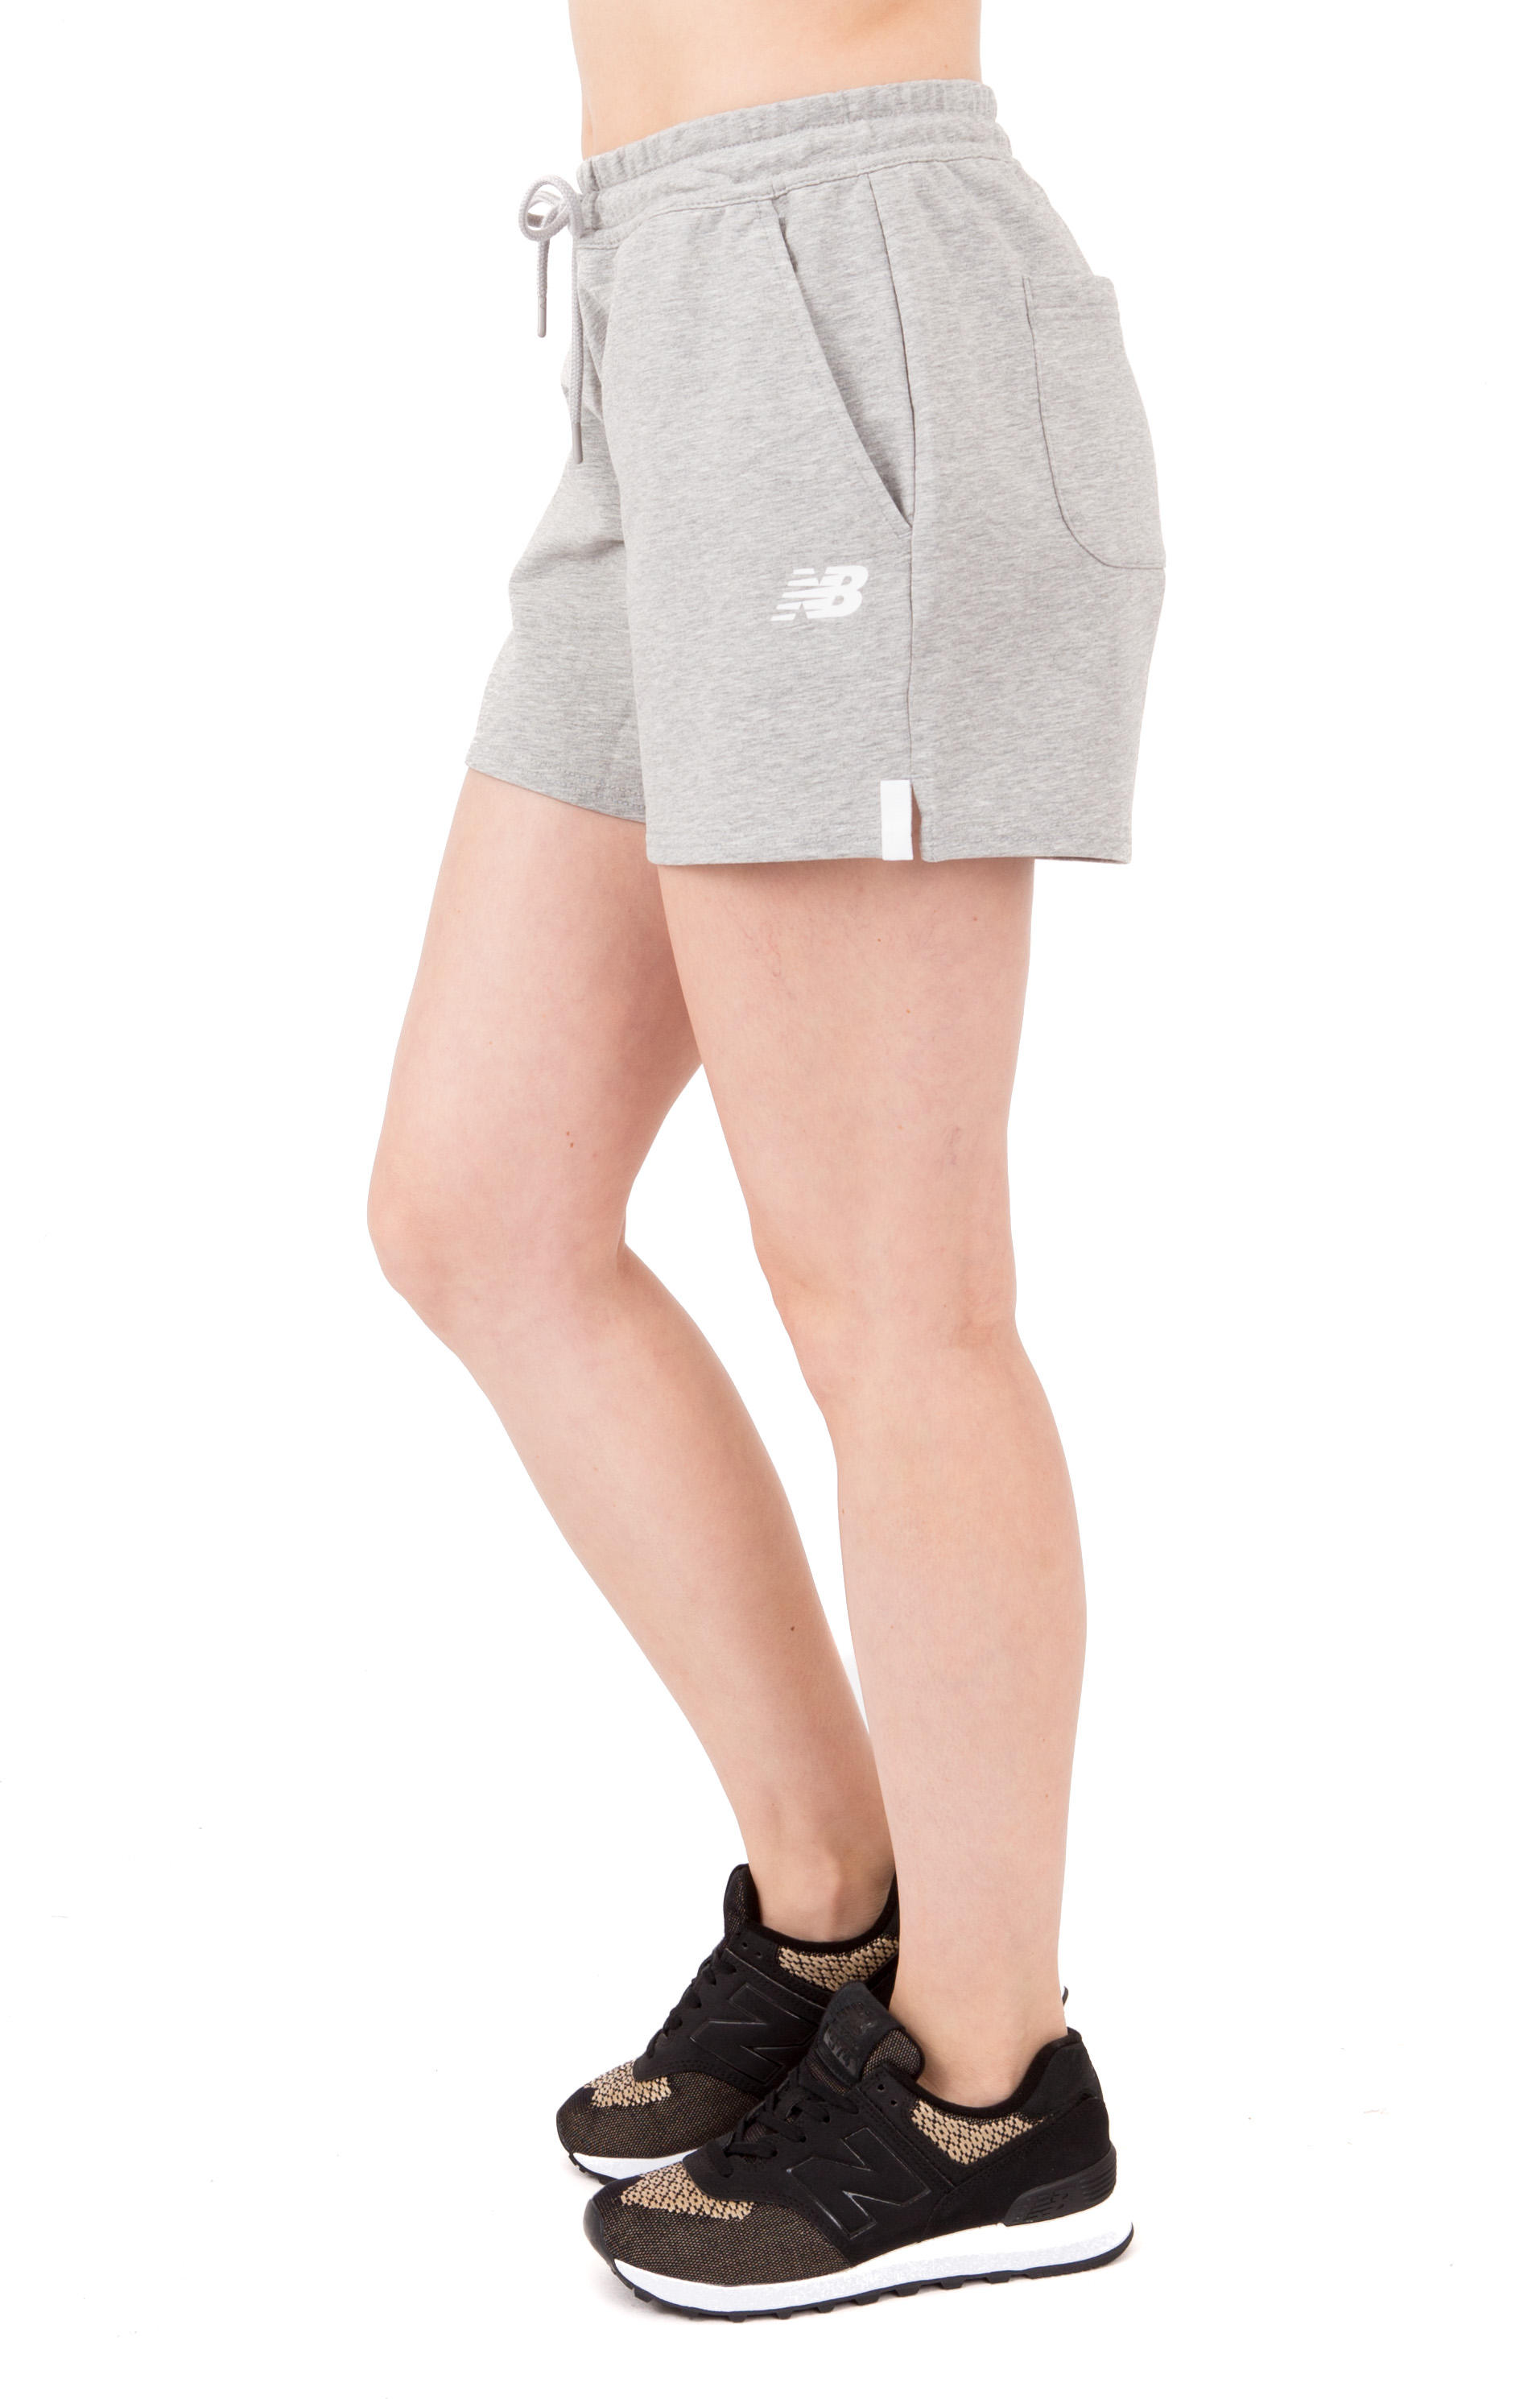 Atheletics Knit Short - Grey